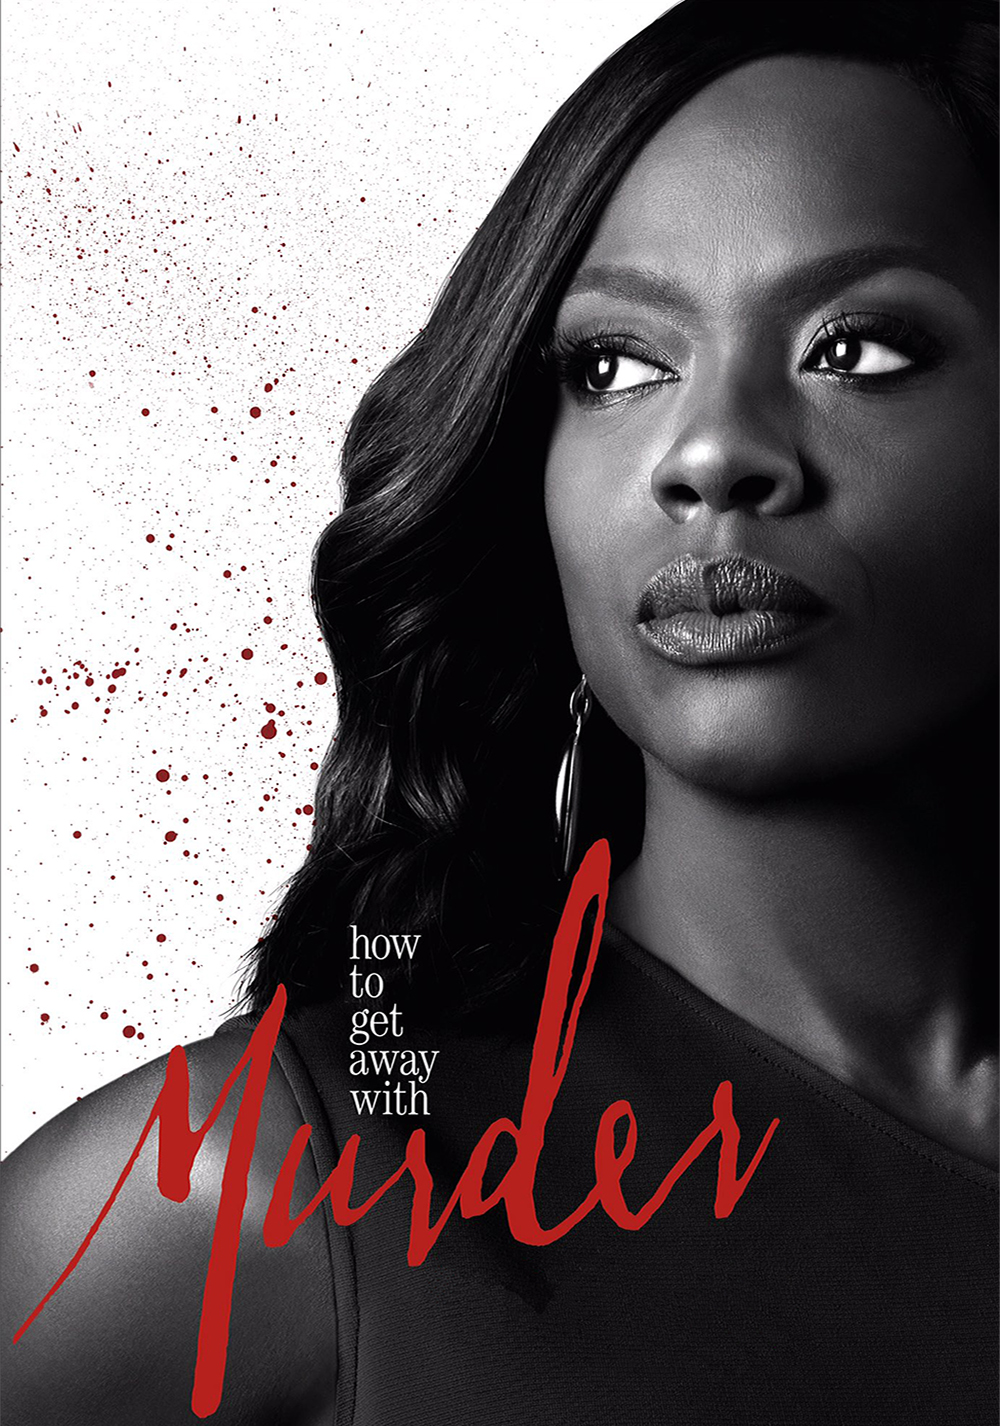 How to get away with a murderer season 5 episode 2 subtitles